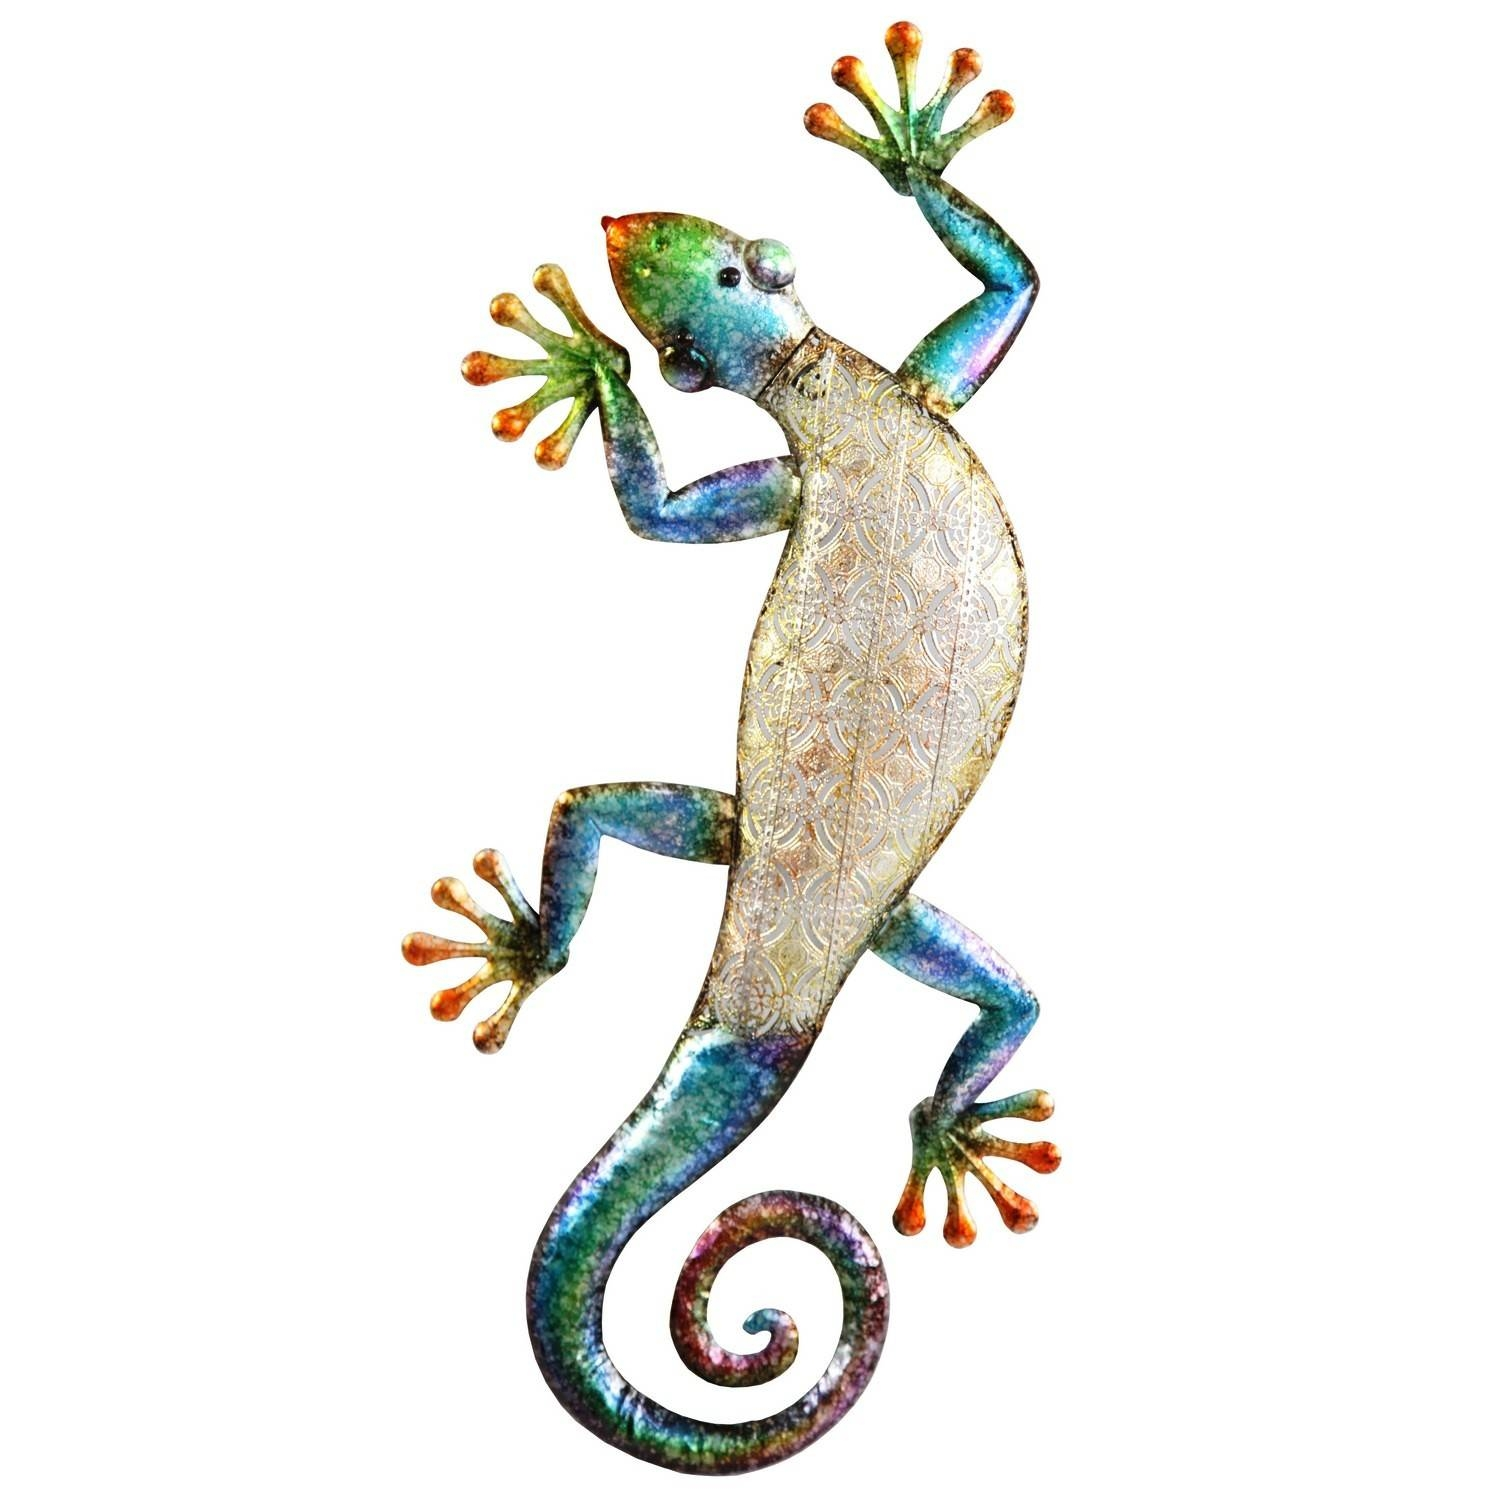 Metal Wall Art Gecko | Decorcave For Most Up To Date Gecko Metal Wall Art (View 4 of 20)